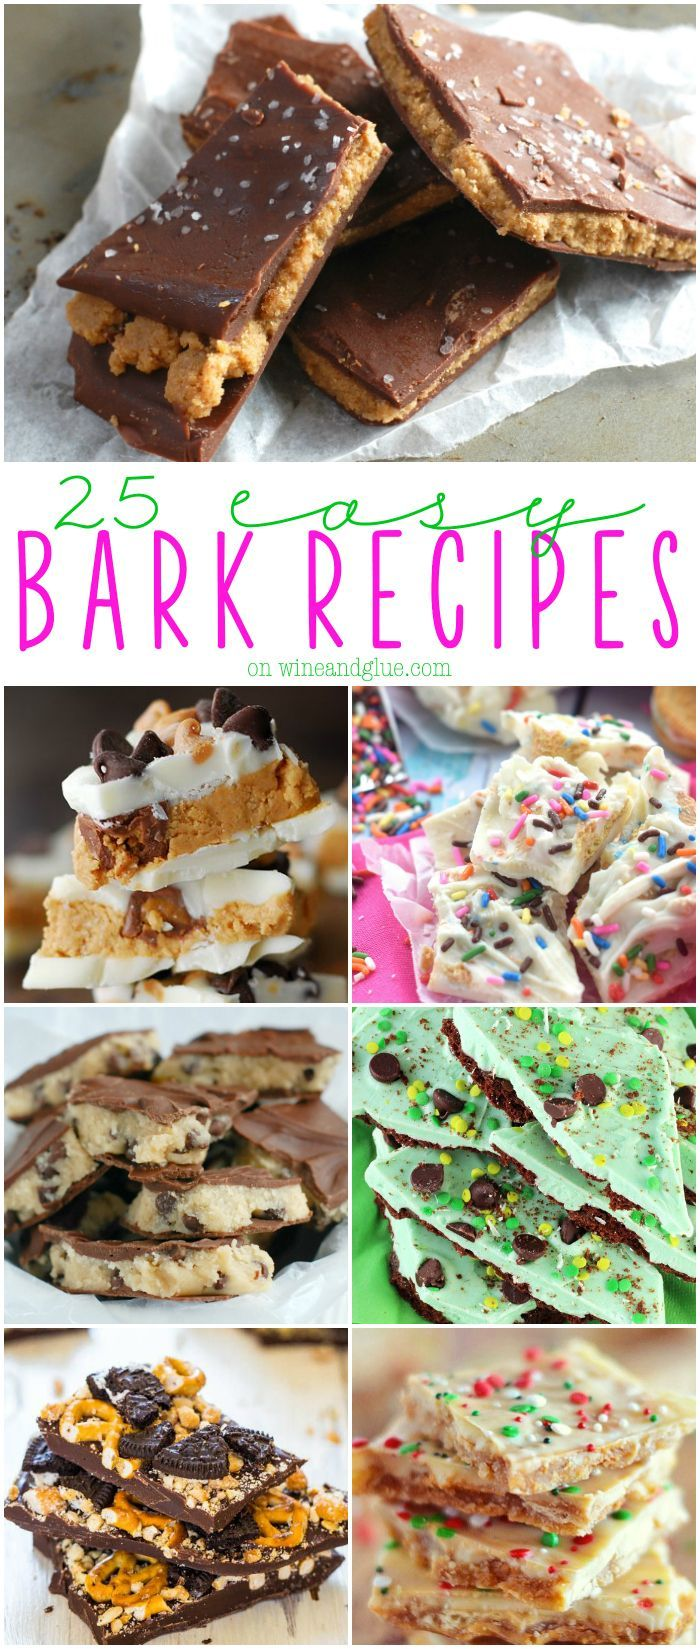 25 Easy Bark Recipes   Easy desserts that everyone will love!